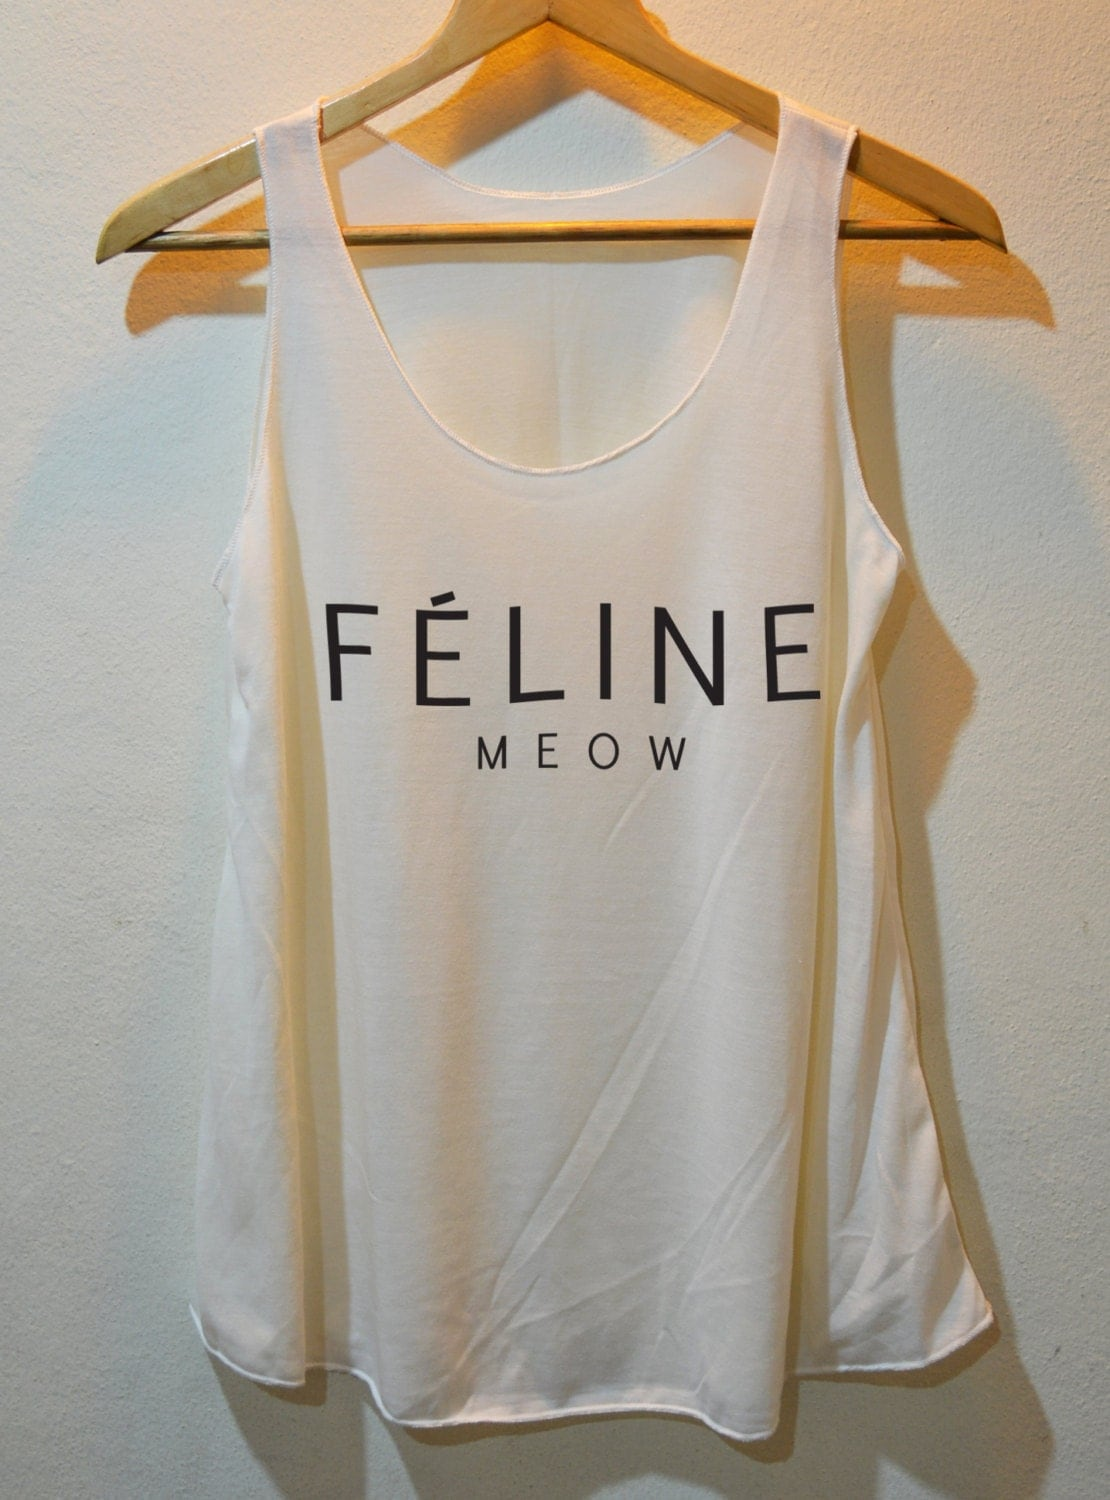 Feline Meow Inspired printed Shirt Tank Top Vest Ladies Small Large